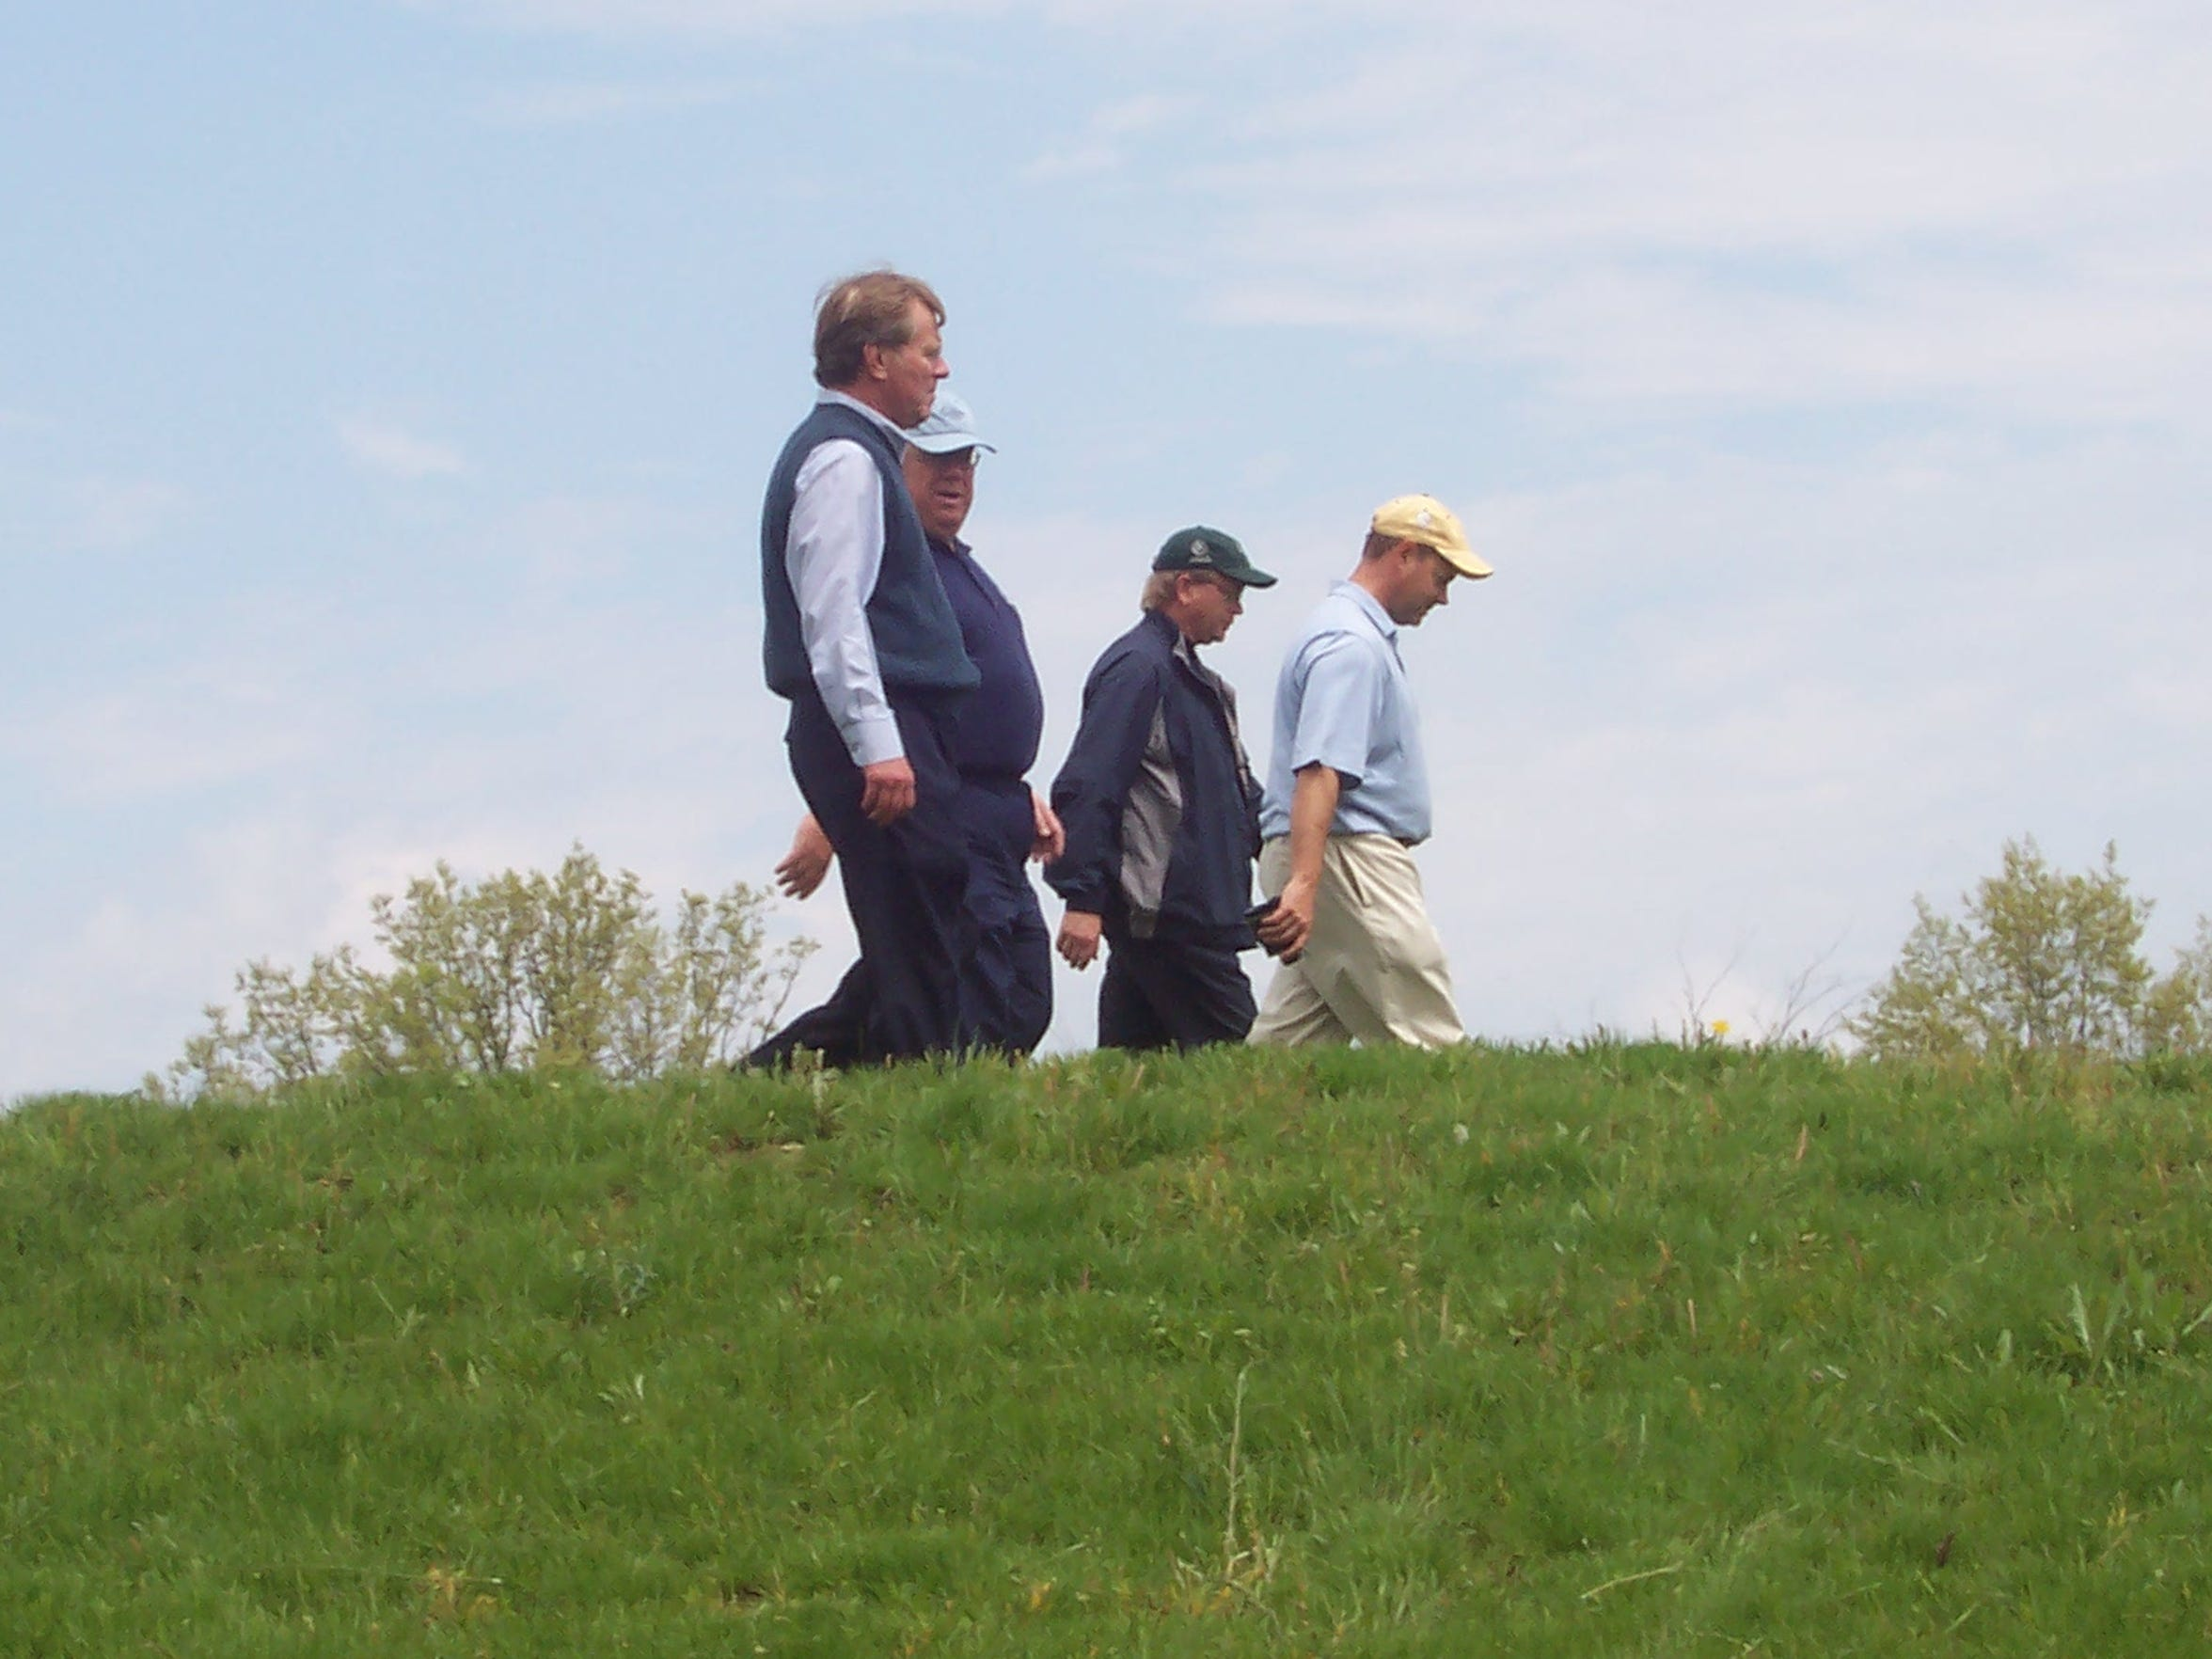 Mike Davis (in yellow hat), now the executive director of the USGA, and Bob Lang (foreground) walk Erin Hills during a scouting visit in 2006.